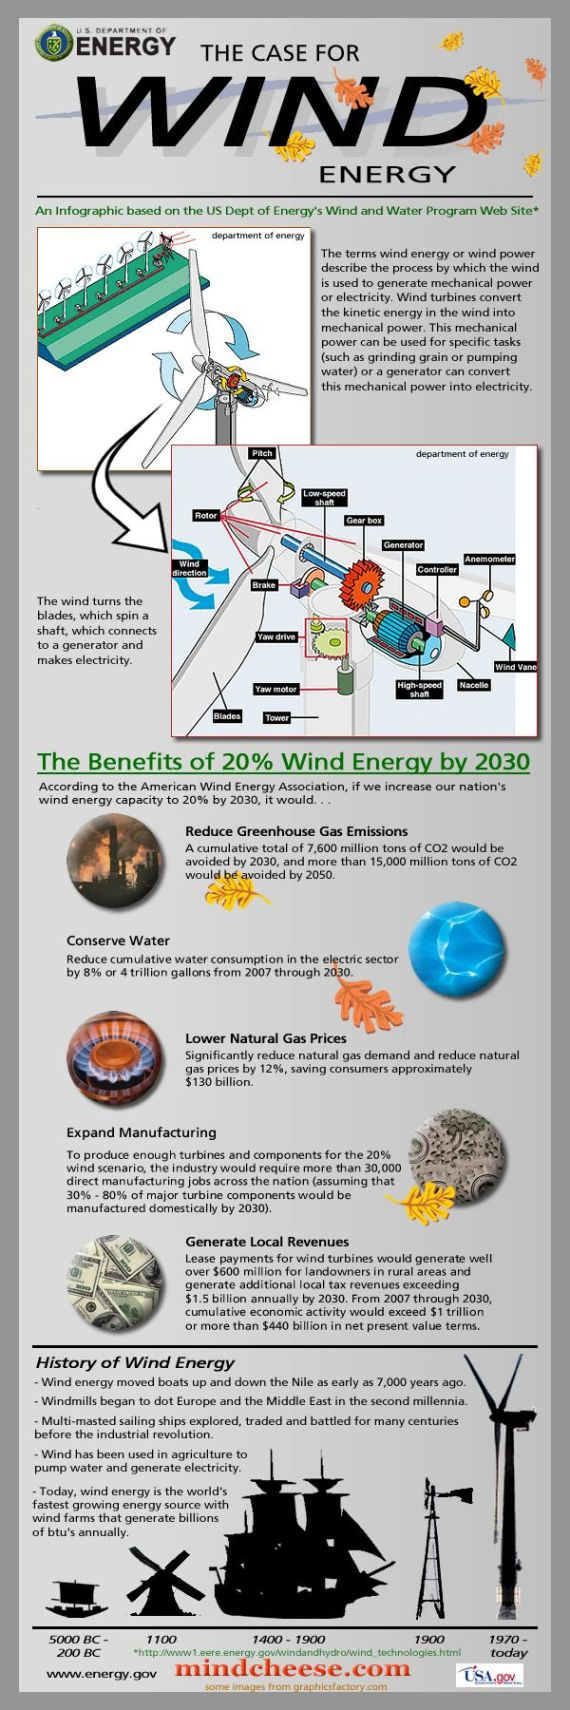 case for wind energy